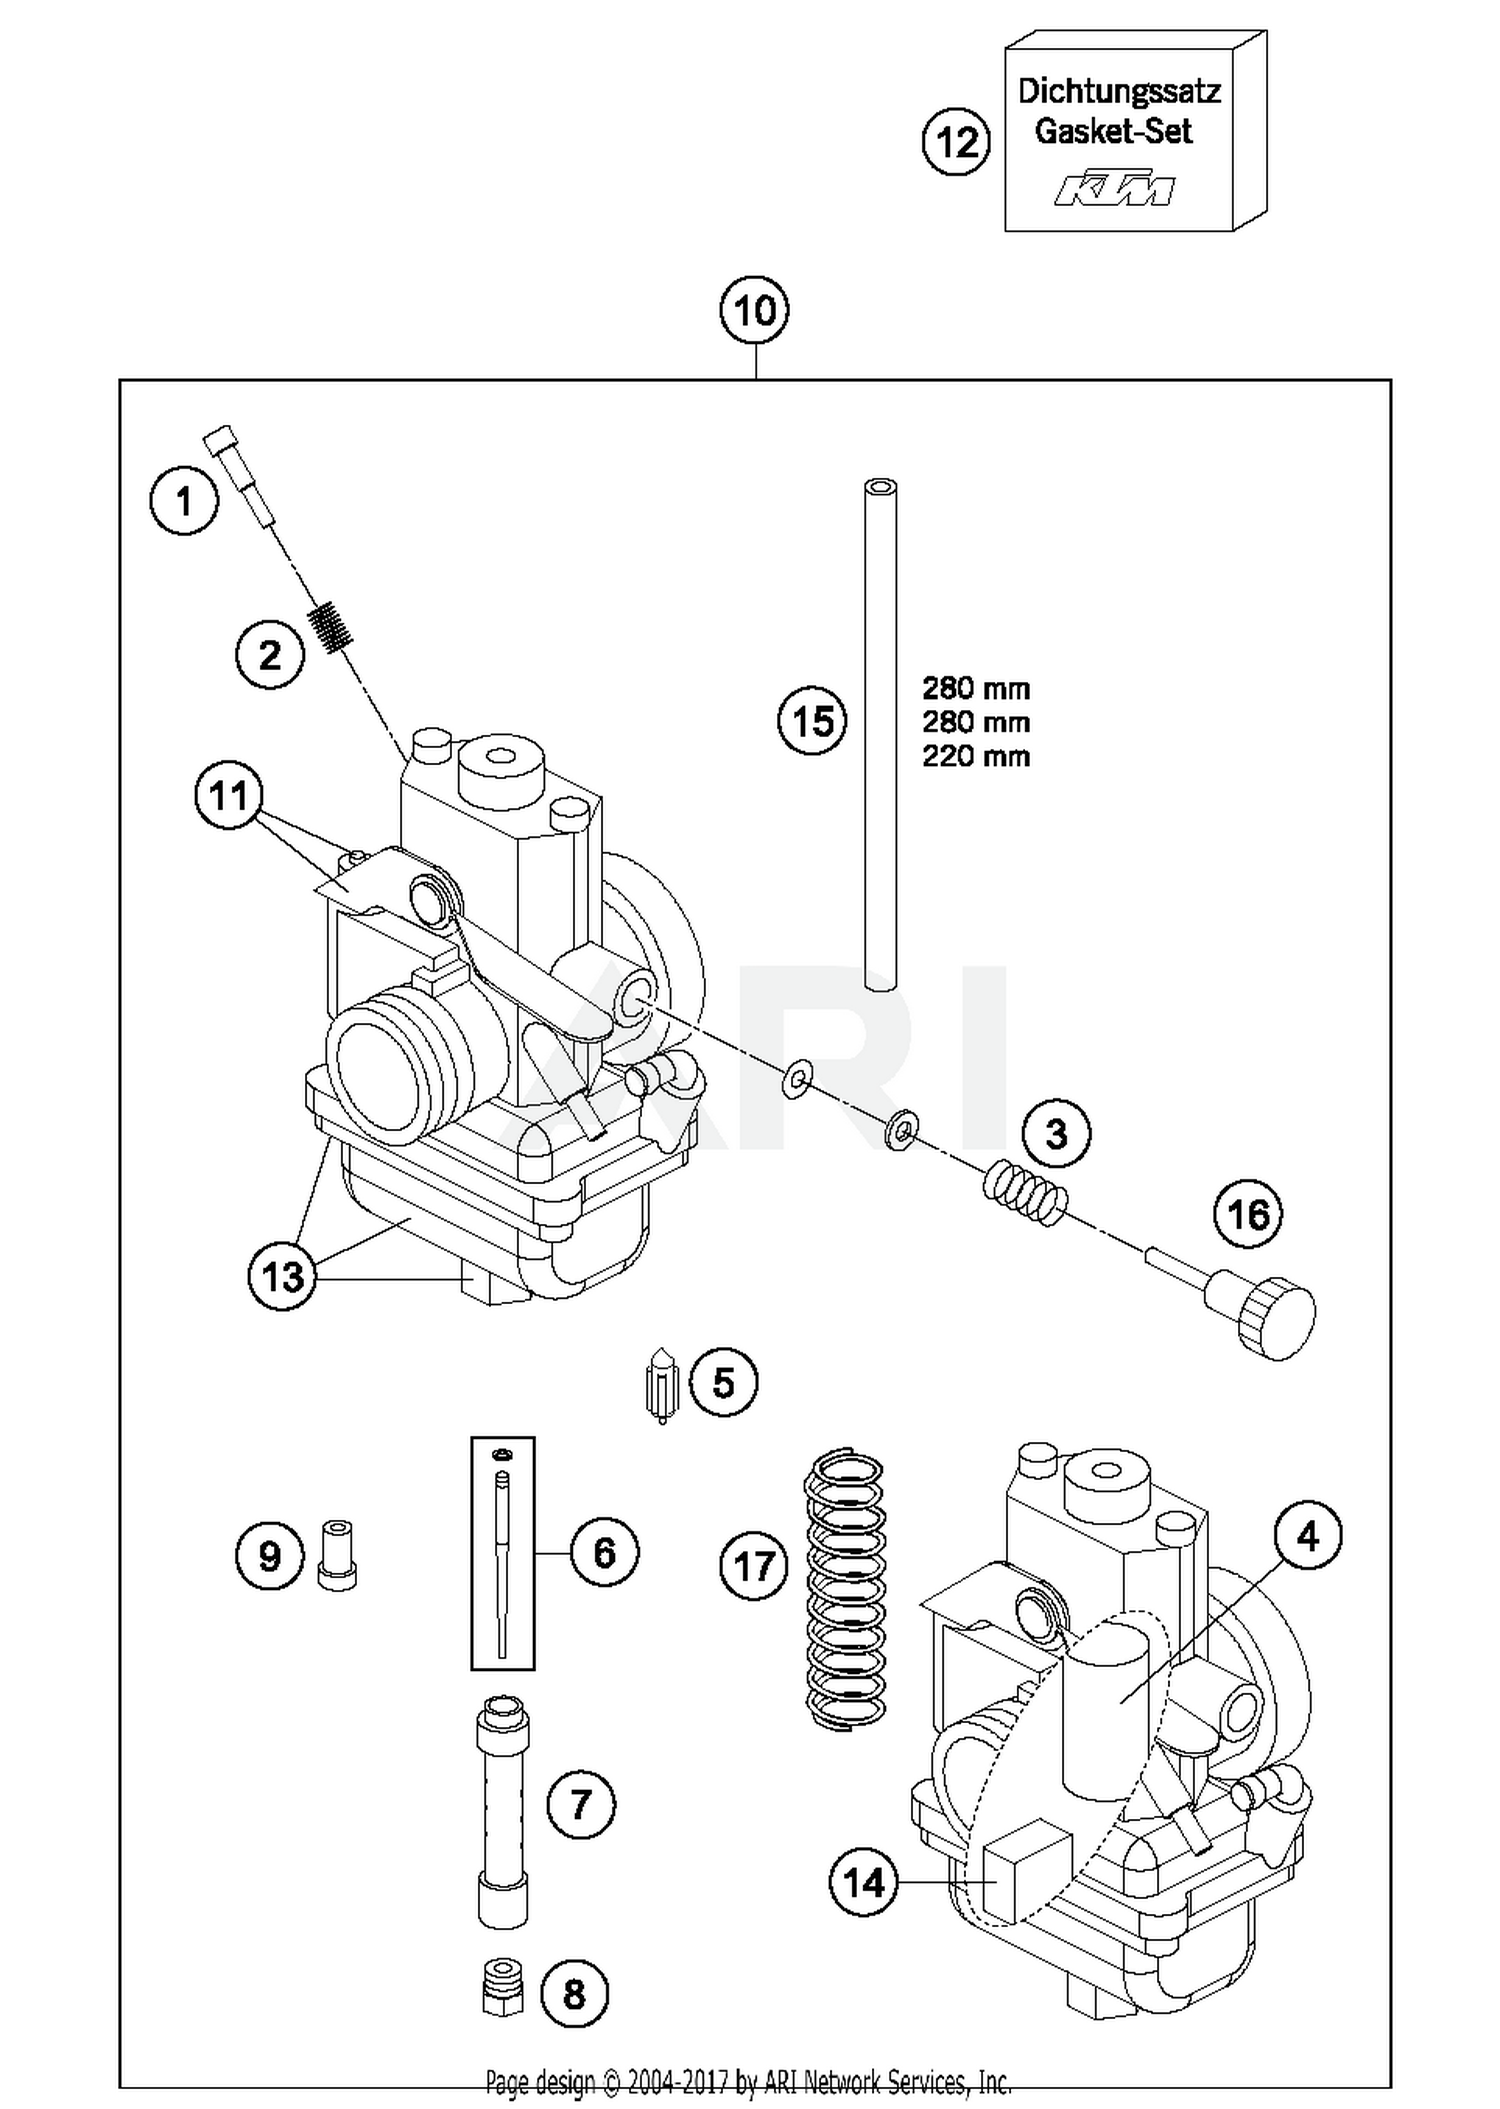 Ktm Carb Diagram Schematics Wiring Carburetor Drz 400 Upgrade Dirt Bike 2017 65 Sx Parts Best Oem Enzyme